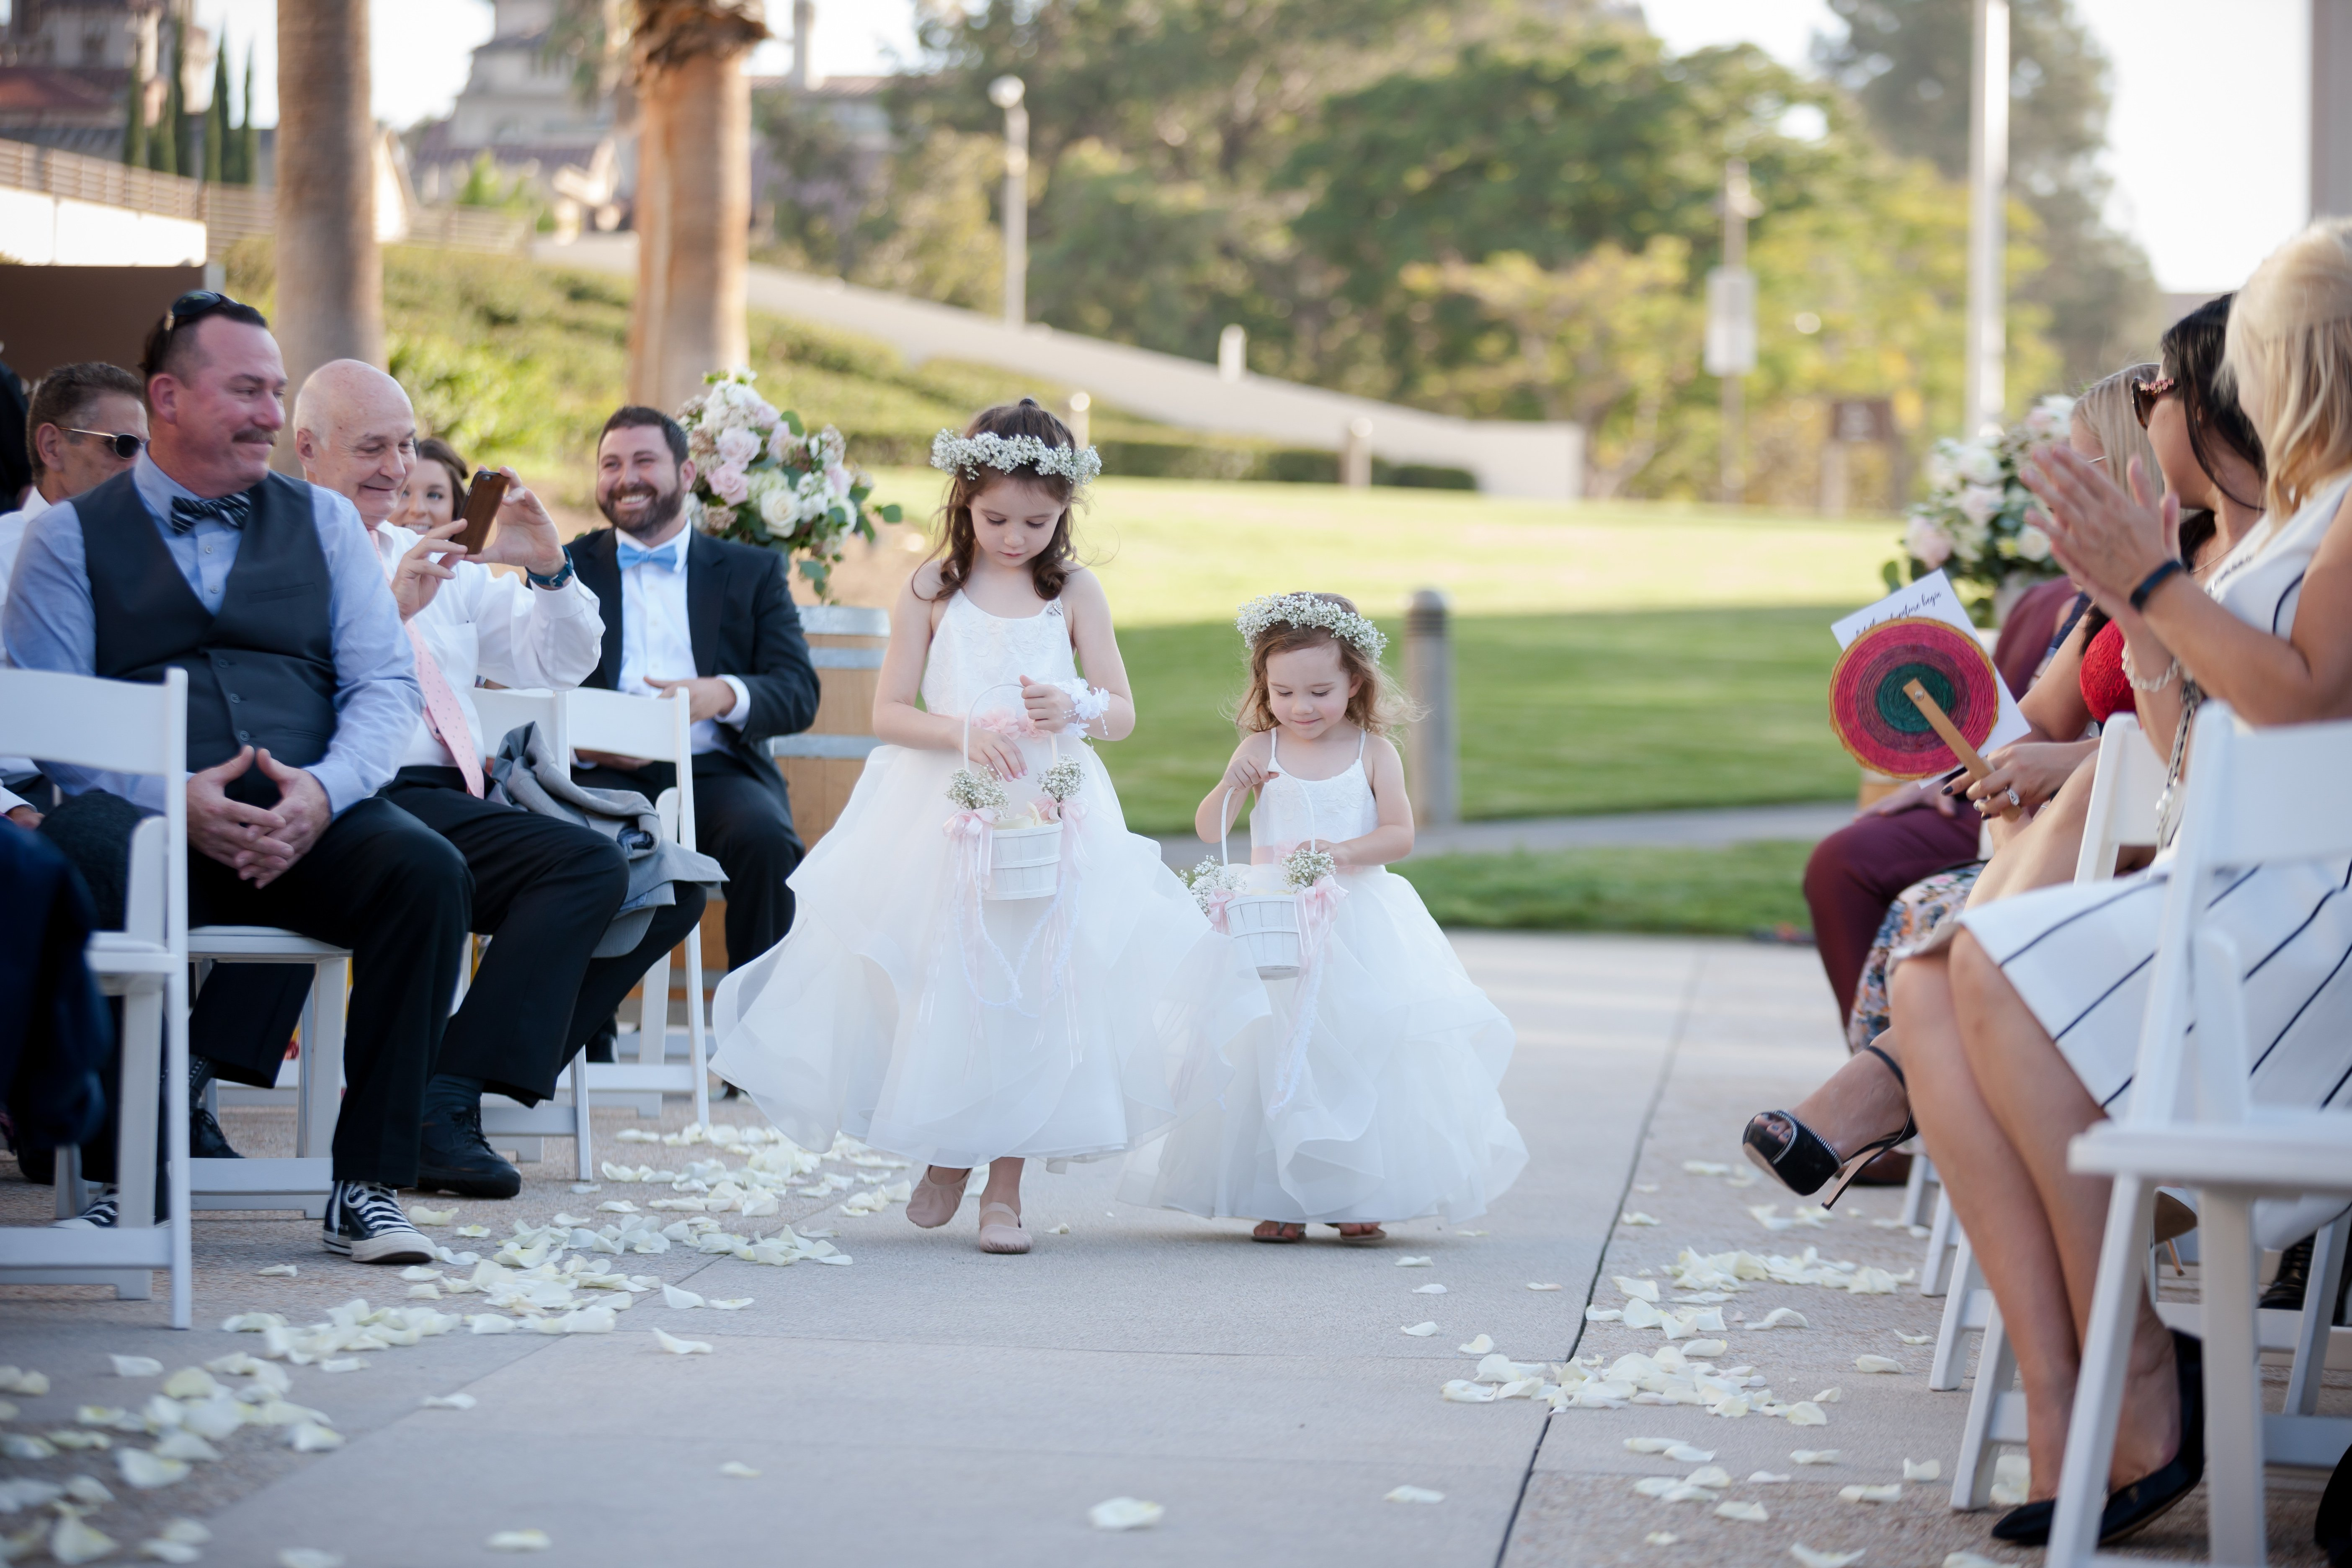 Two flower girls walking down the aisle